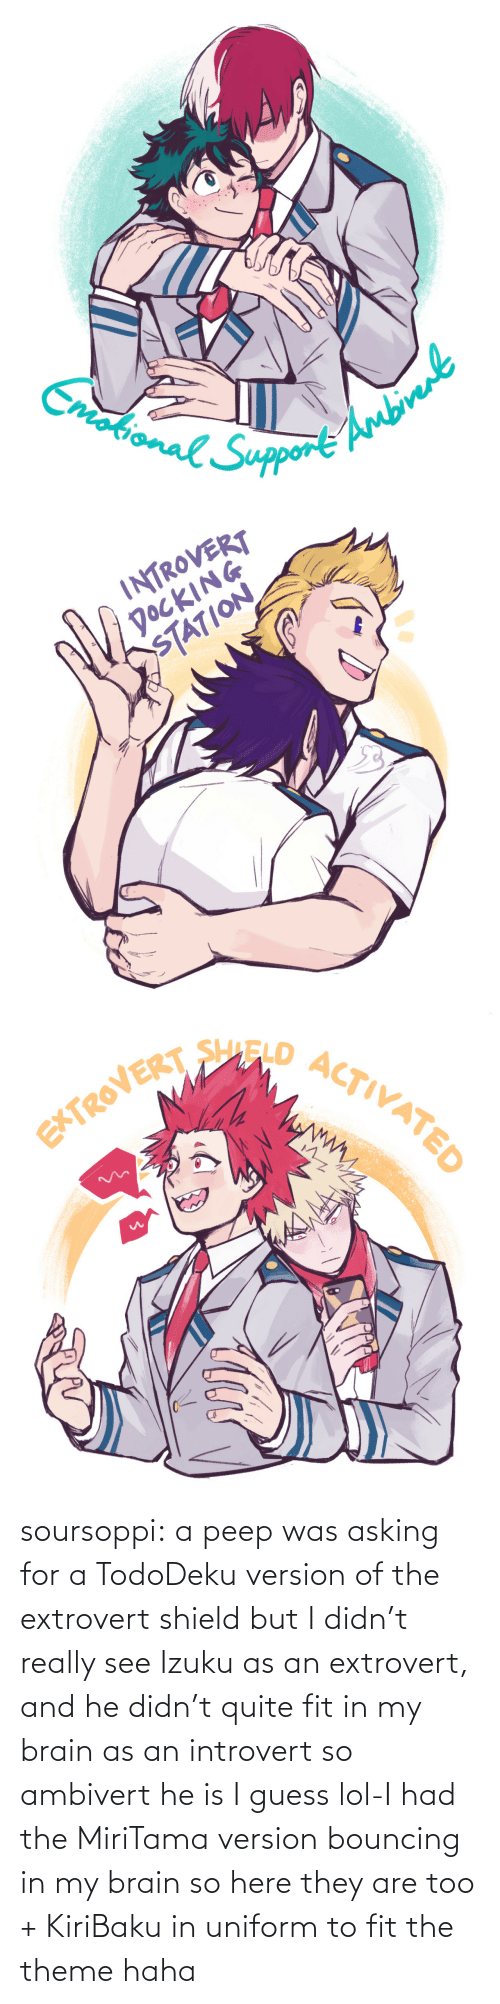 theme: soursoppi:  a peep was asking for a TodoDeku version of the extrovert shield but I didn't really see Izuku as an extrovert, and he didn't quite fit in my brain as an introvert so ambivert he is I guess lol-I had the MiriTama version bouncing in my brain so here they are too + KiriBaku in uniform to fit the theme haha